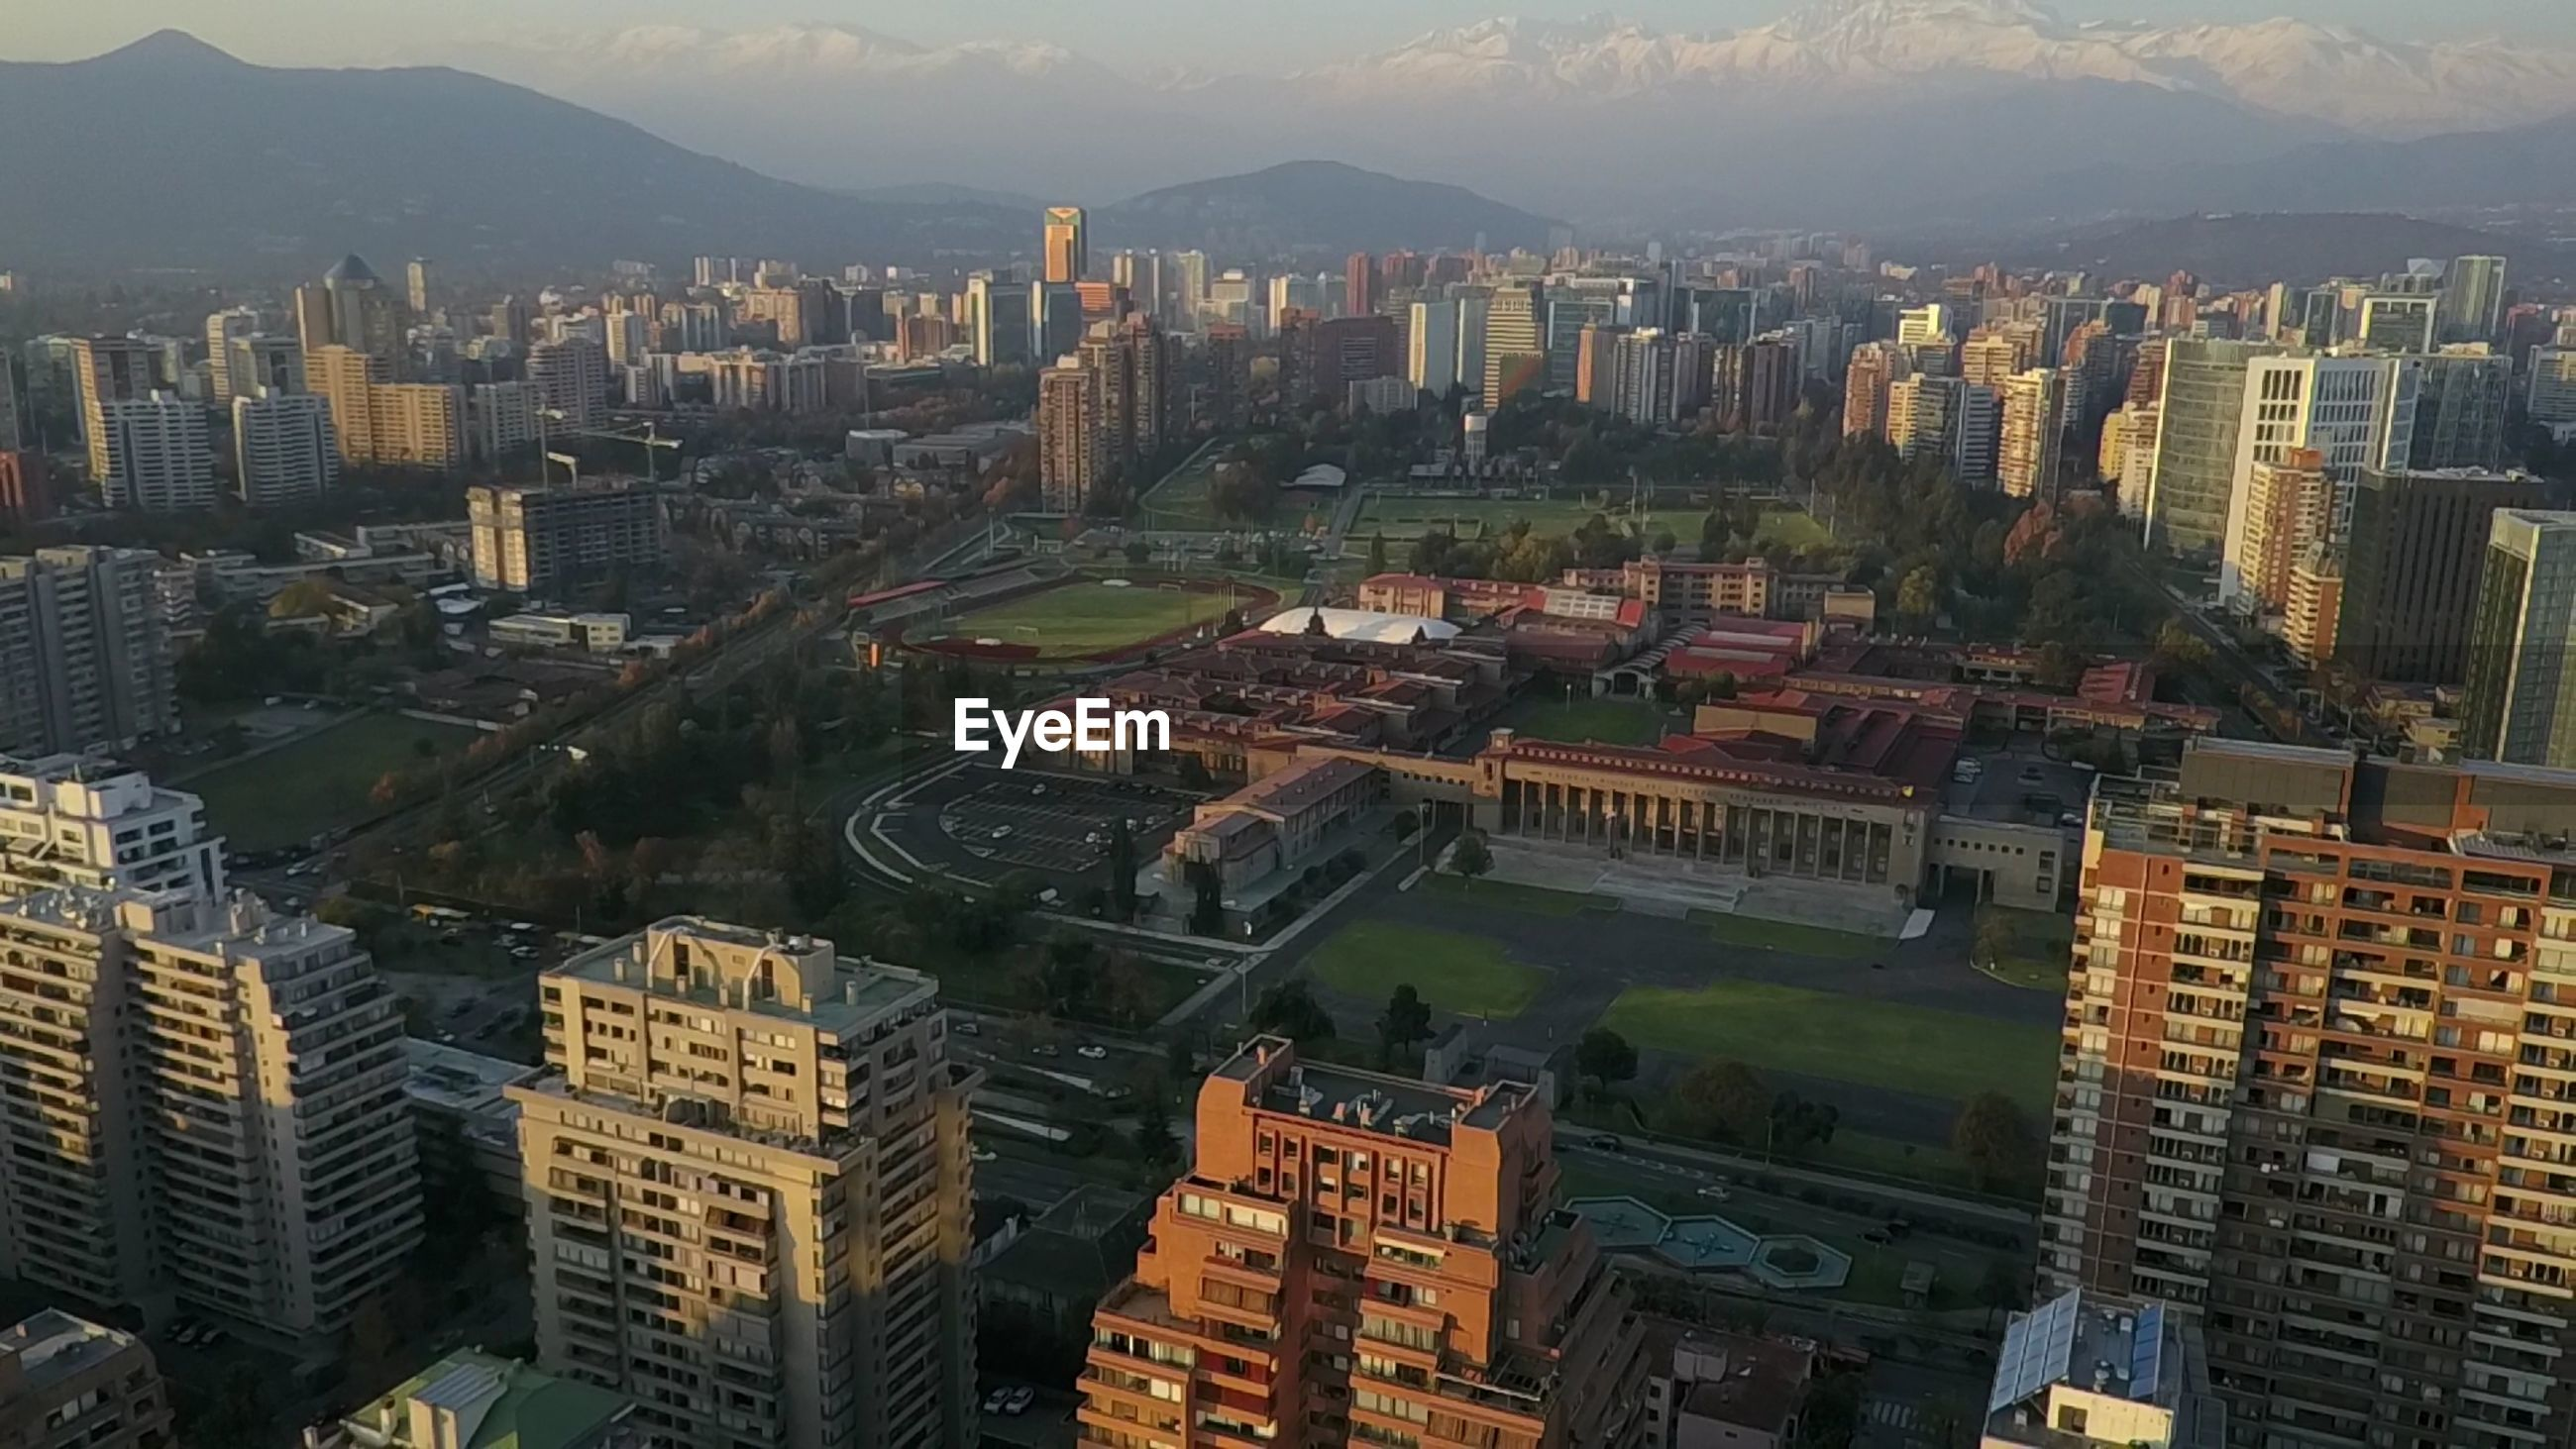 HIGH ANGLE VIEW OF CITYSCAPE AGAINST MOUNTAIN